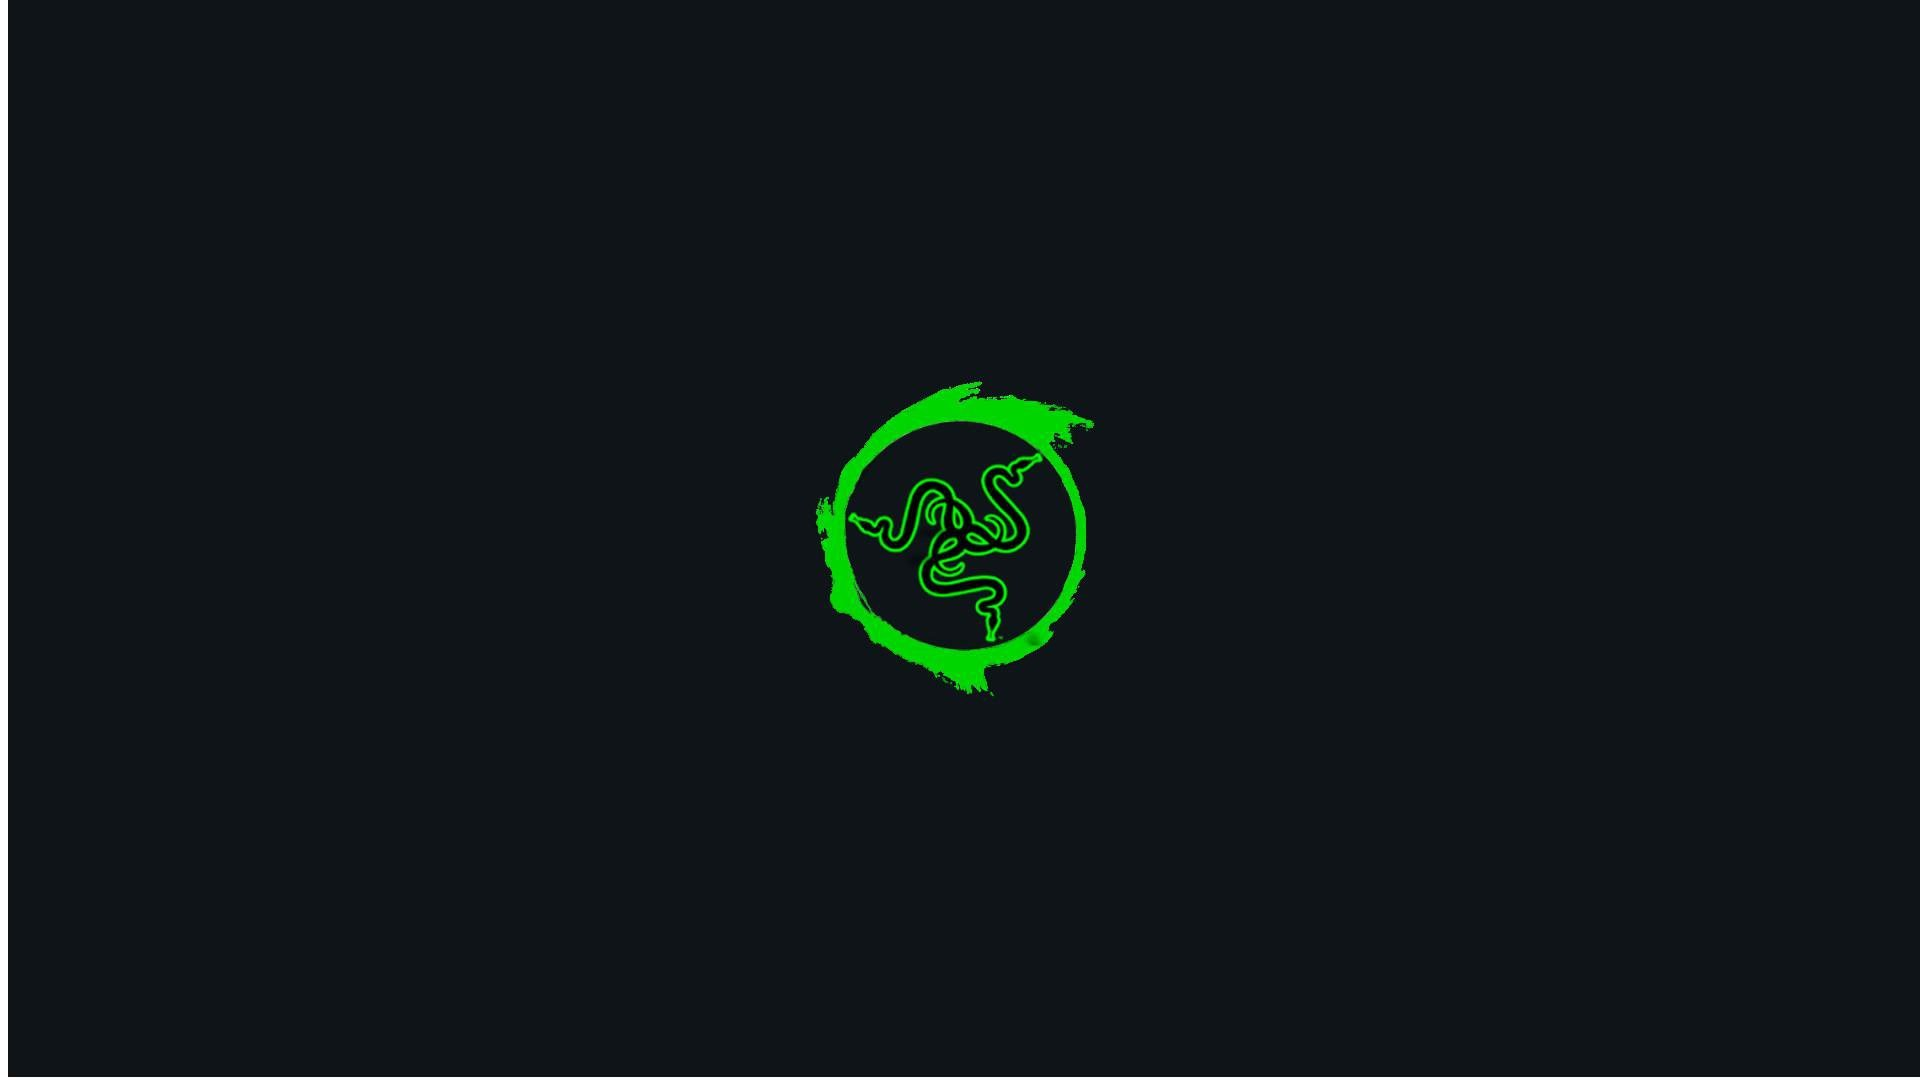 Res: 1920x1080, Green on Black Razer Gaming Wallpaper for Phone and HD Desktop Backgrounds